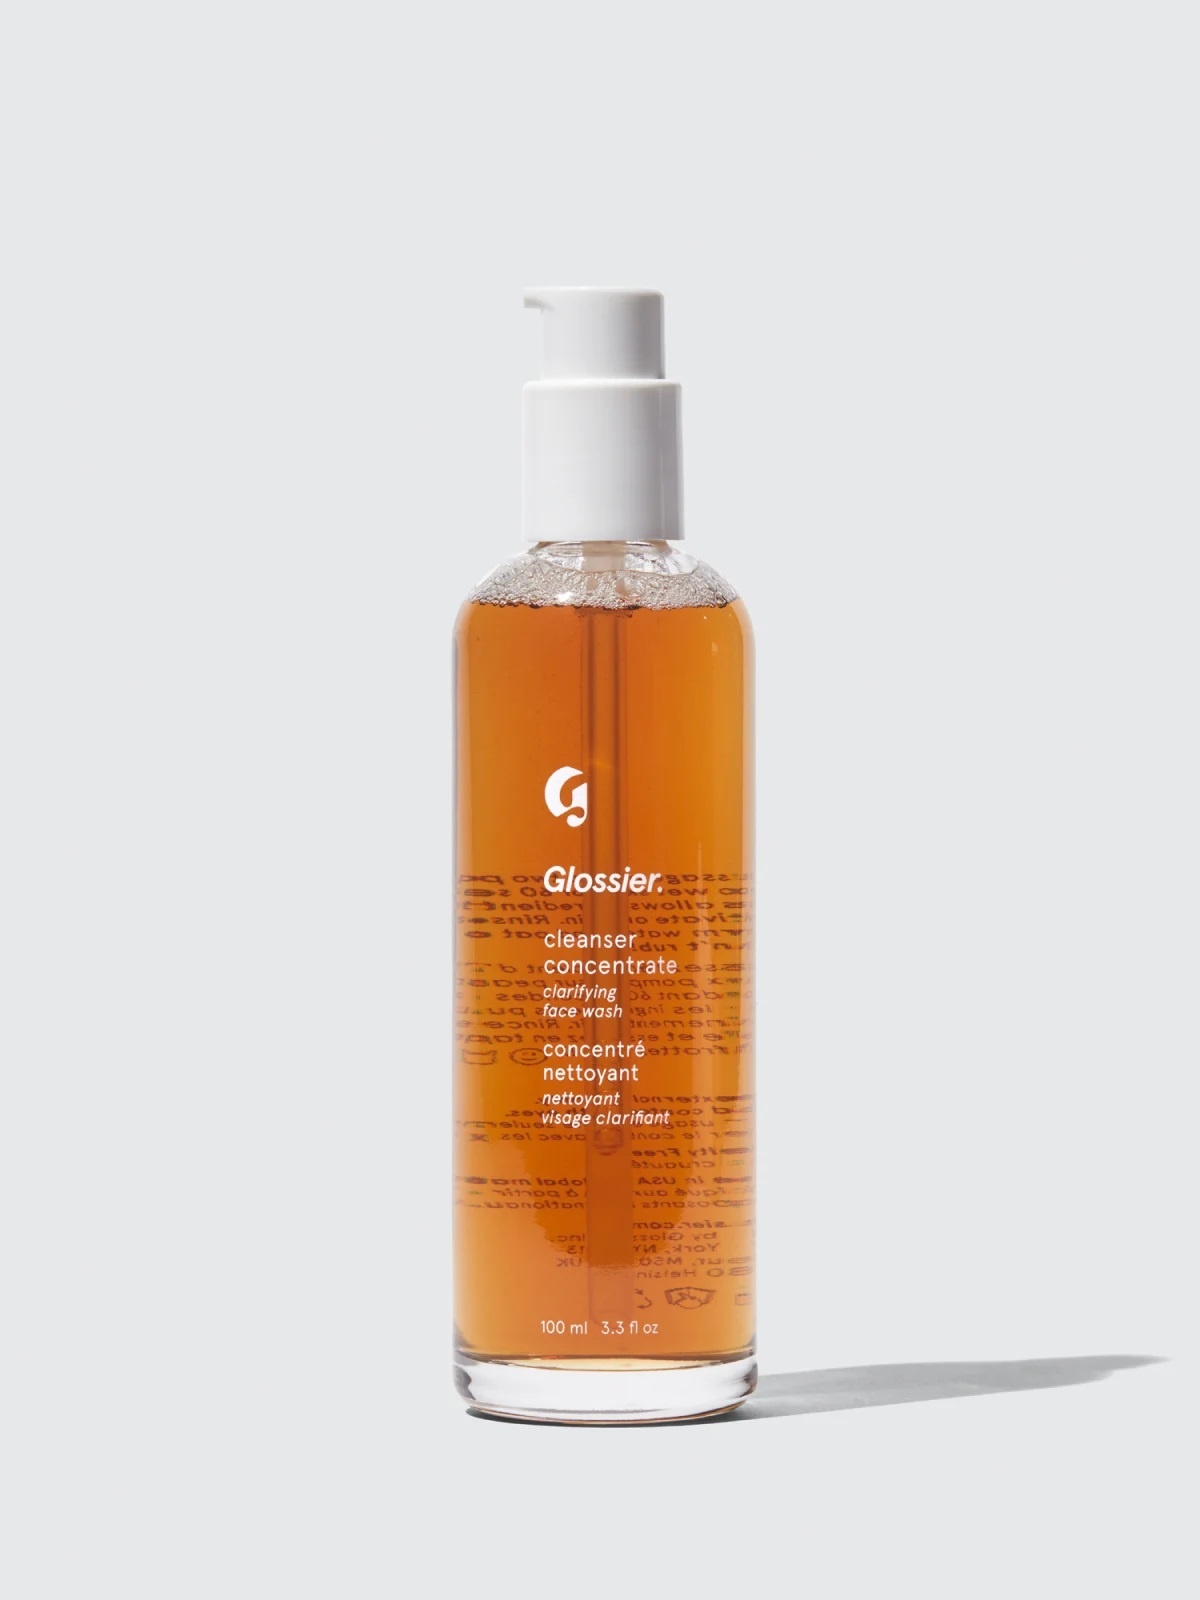 Glossier Cleanser Concentrate Clarifying Face Wash